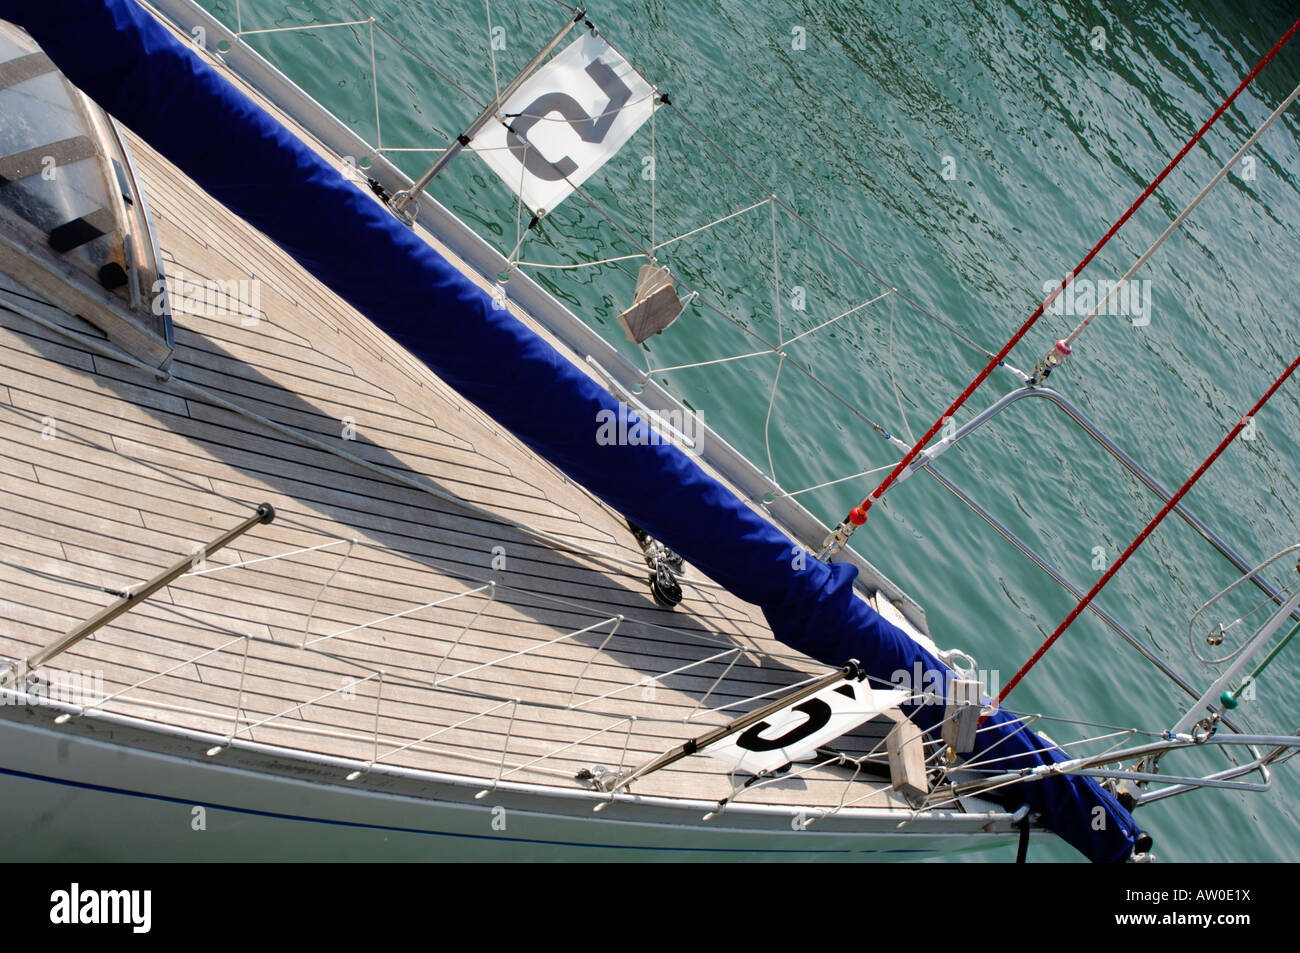 the bow foredeck of a large fast racing yacht in a marinas showing spinaker boom lying on wooden planked deck and - Stock Image